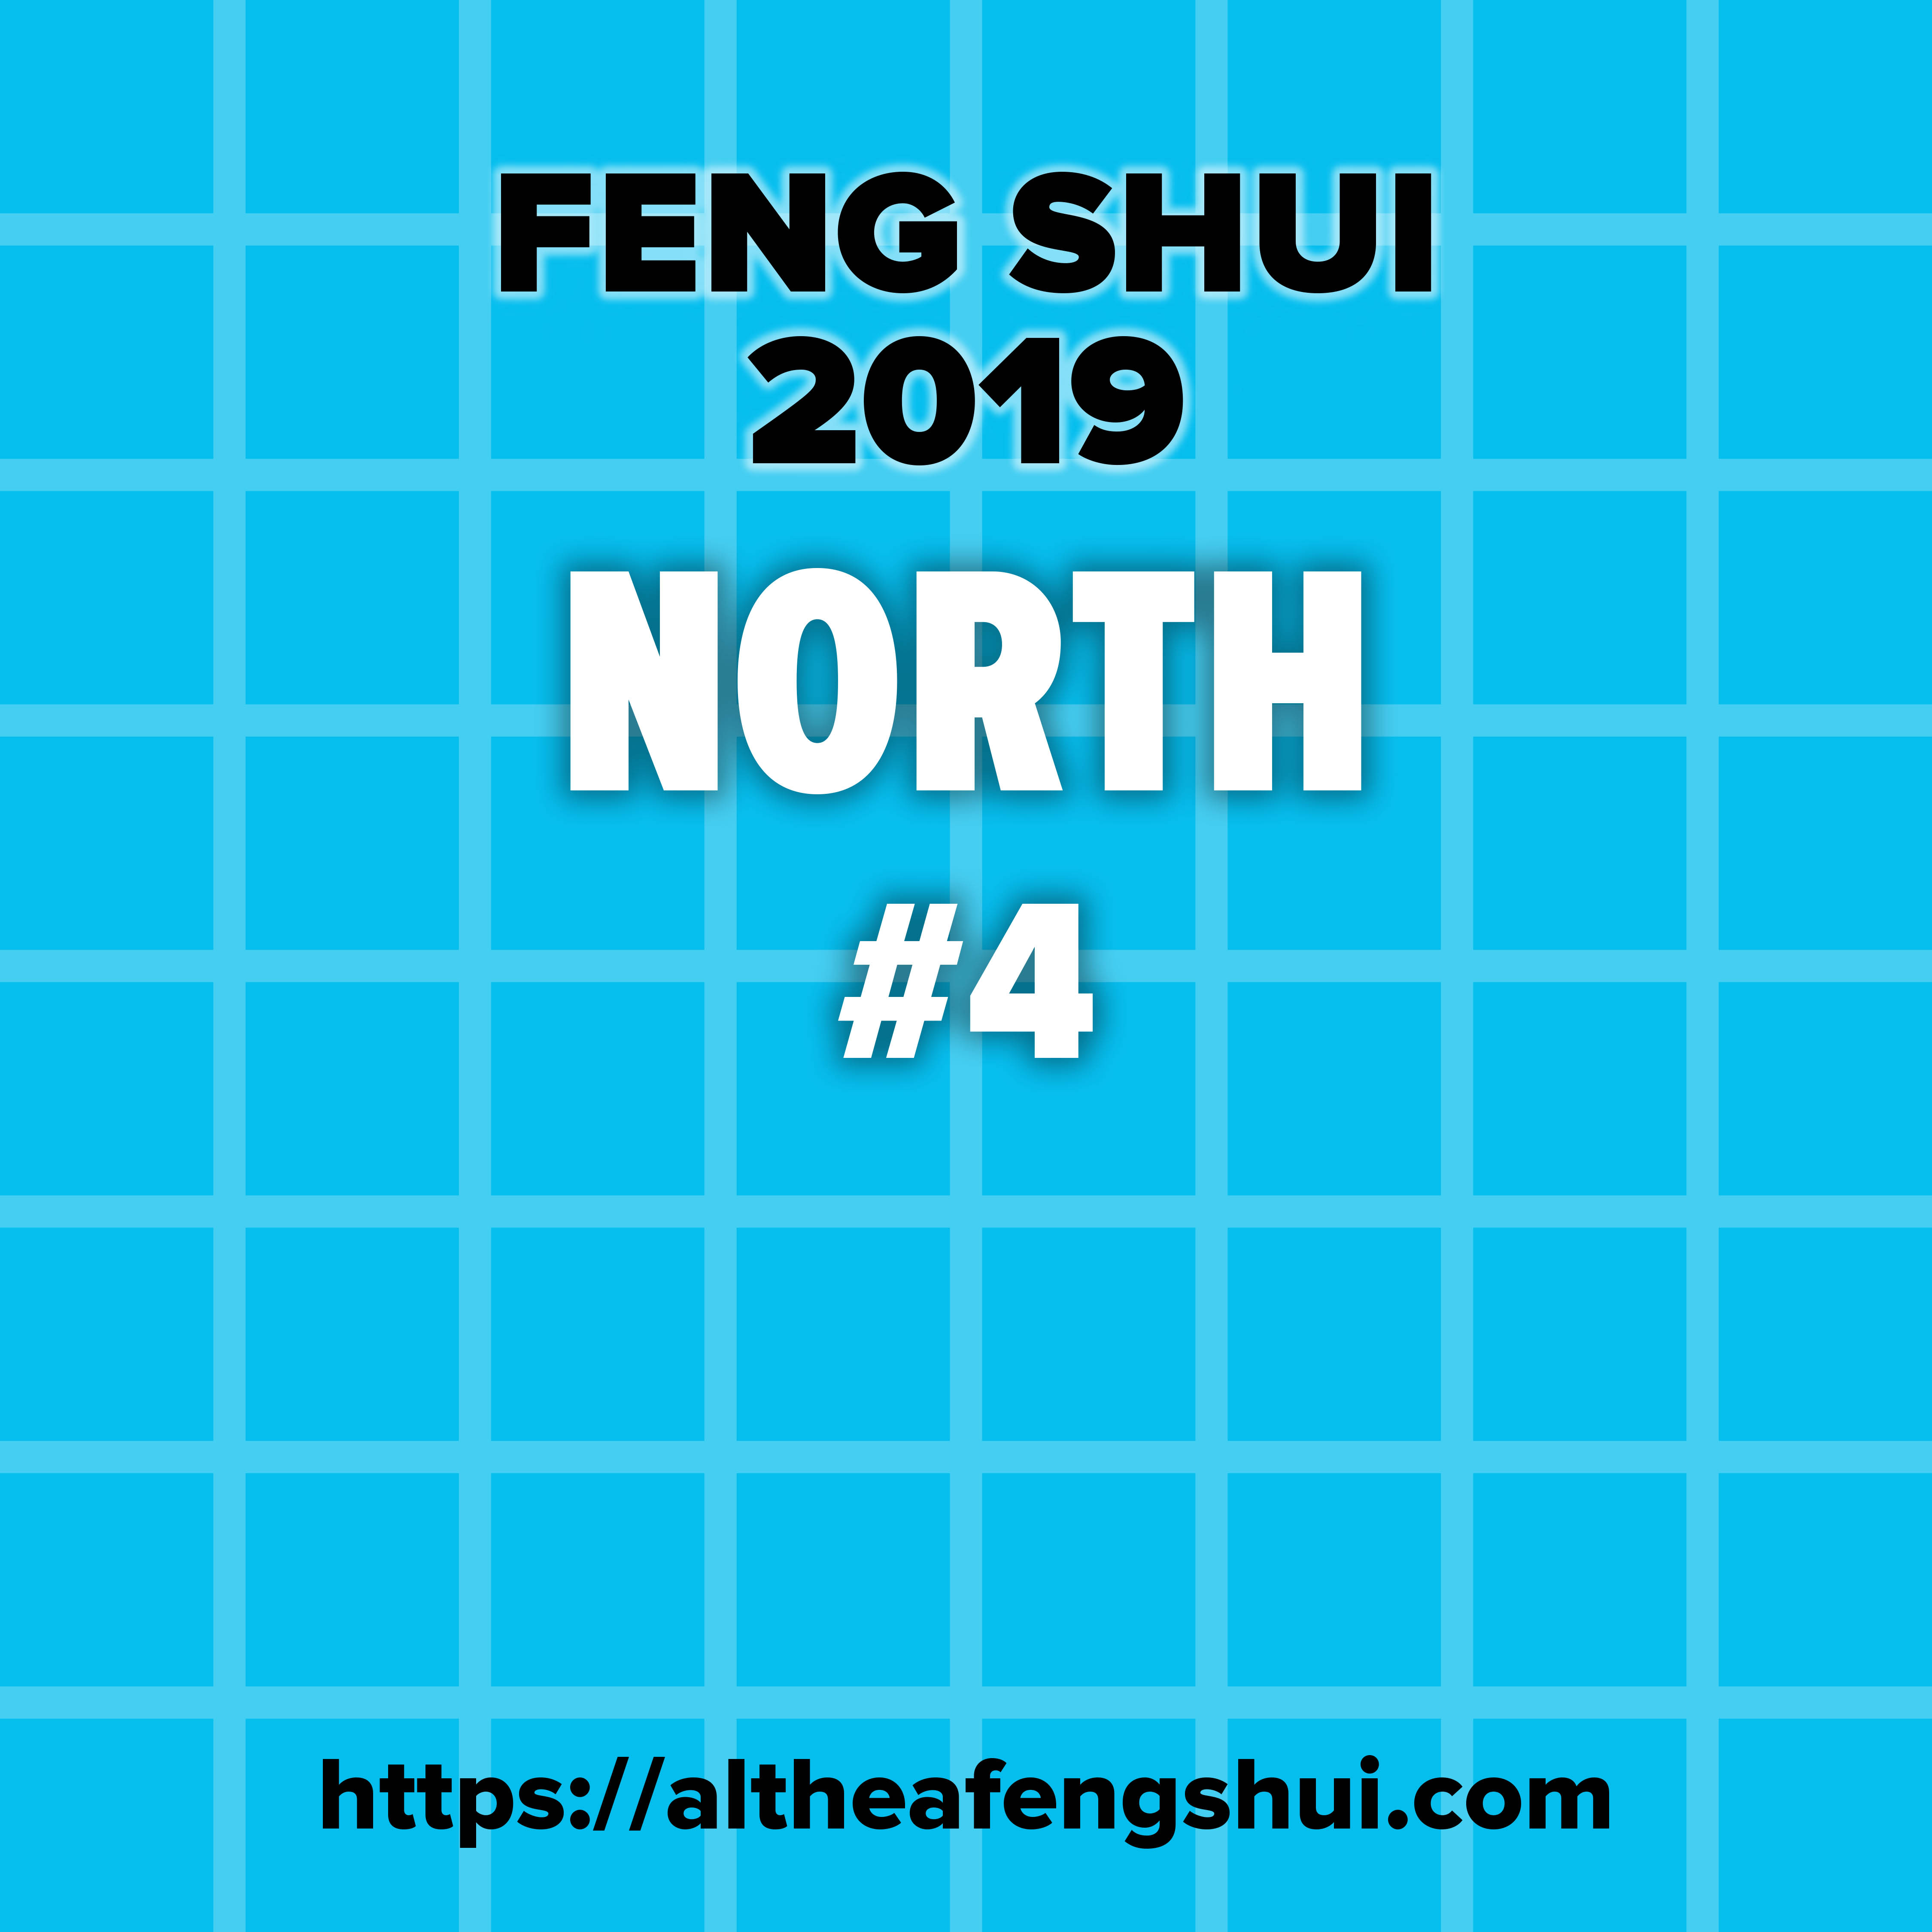 North Feng Shui 2019